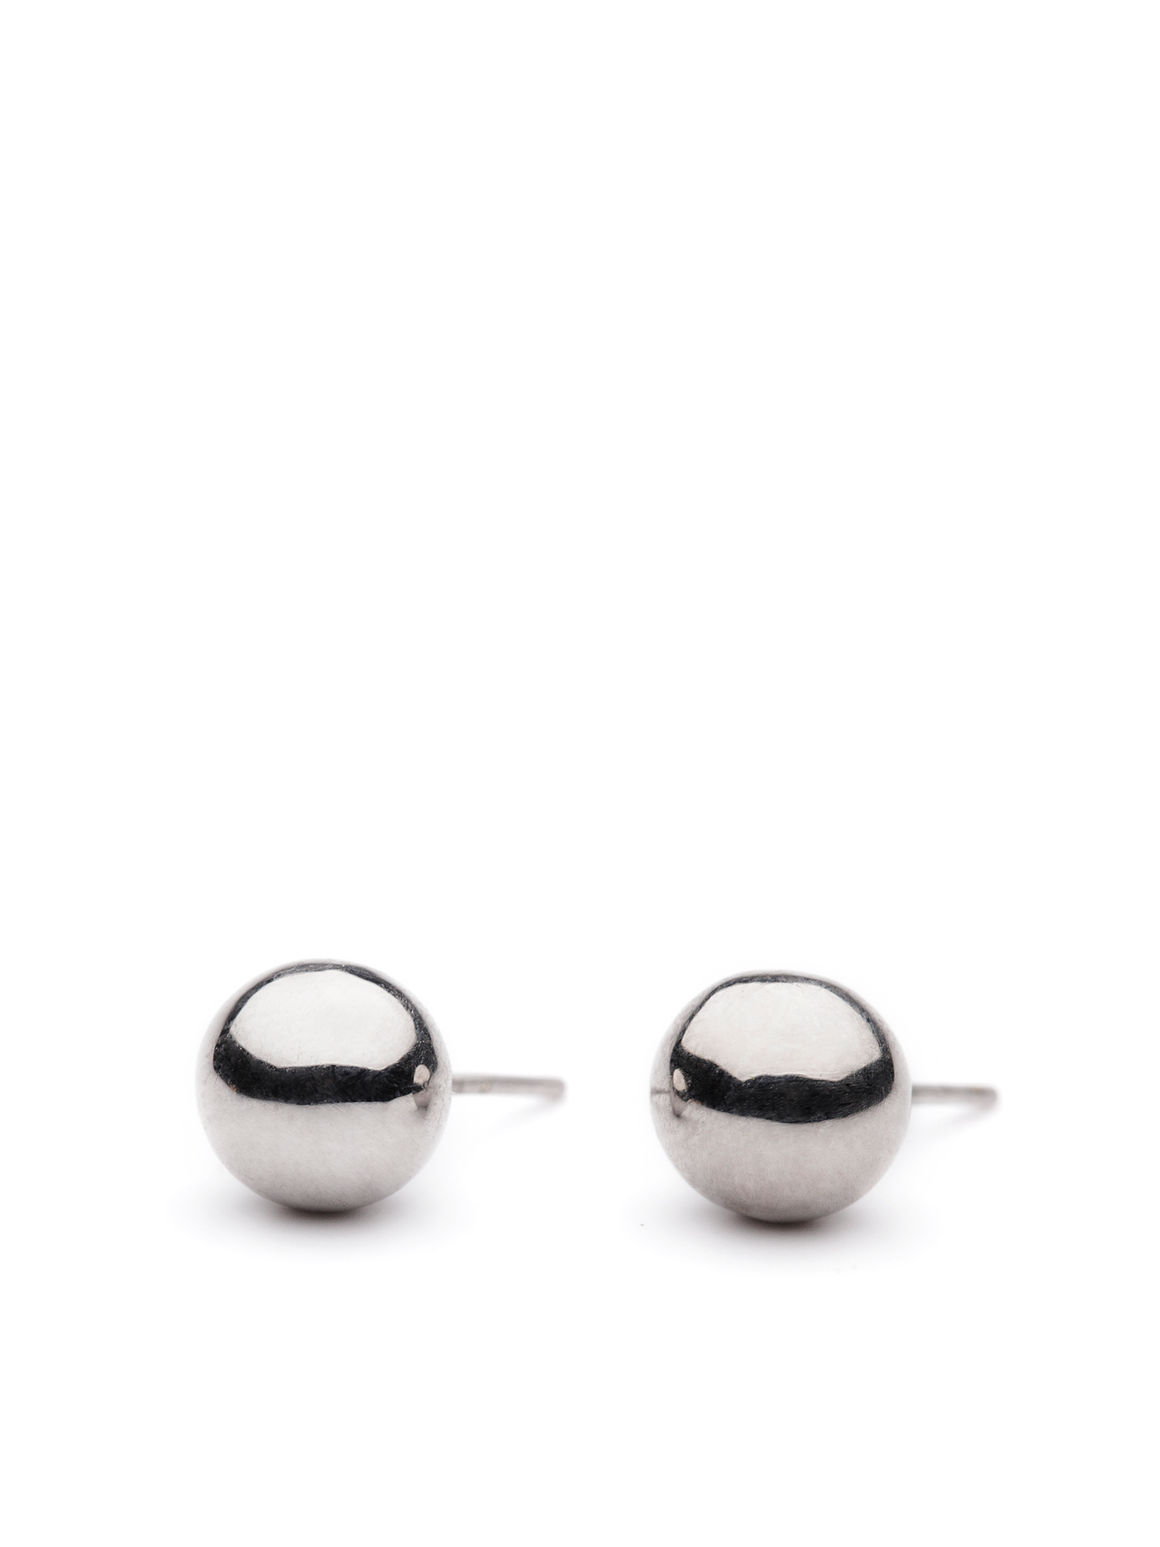 CIRCLE LINES - Stud ball earrings